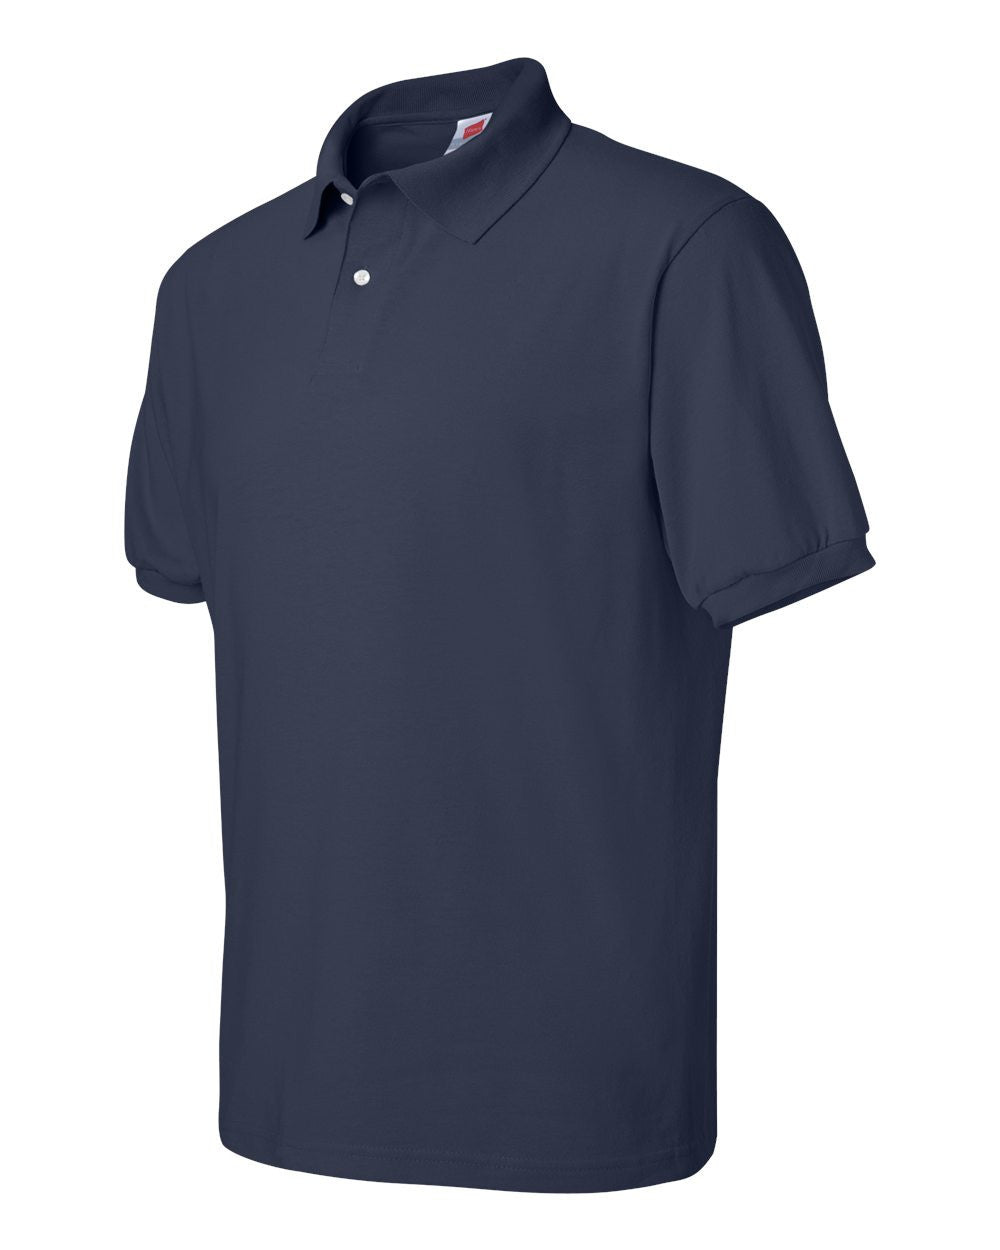 4 pack : Ecosmart polos by Hanes - Discountedrack.com